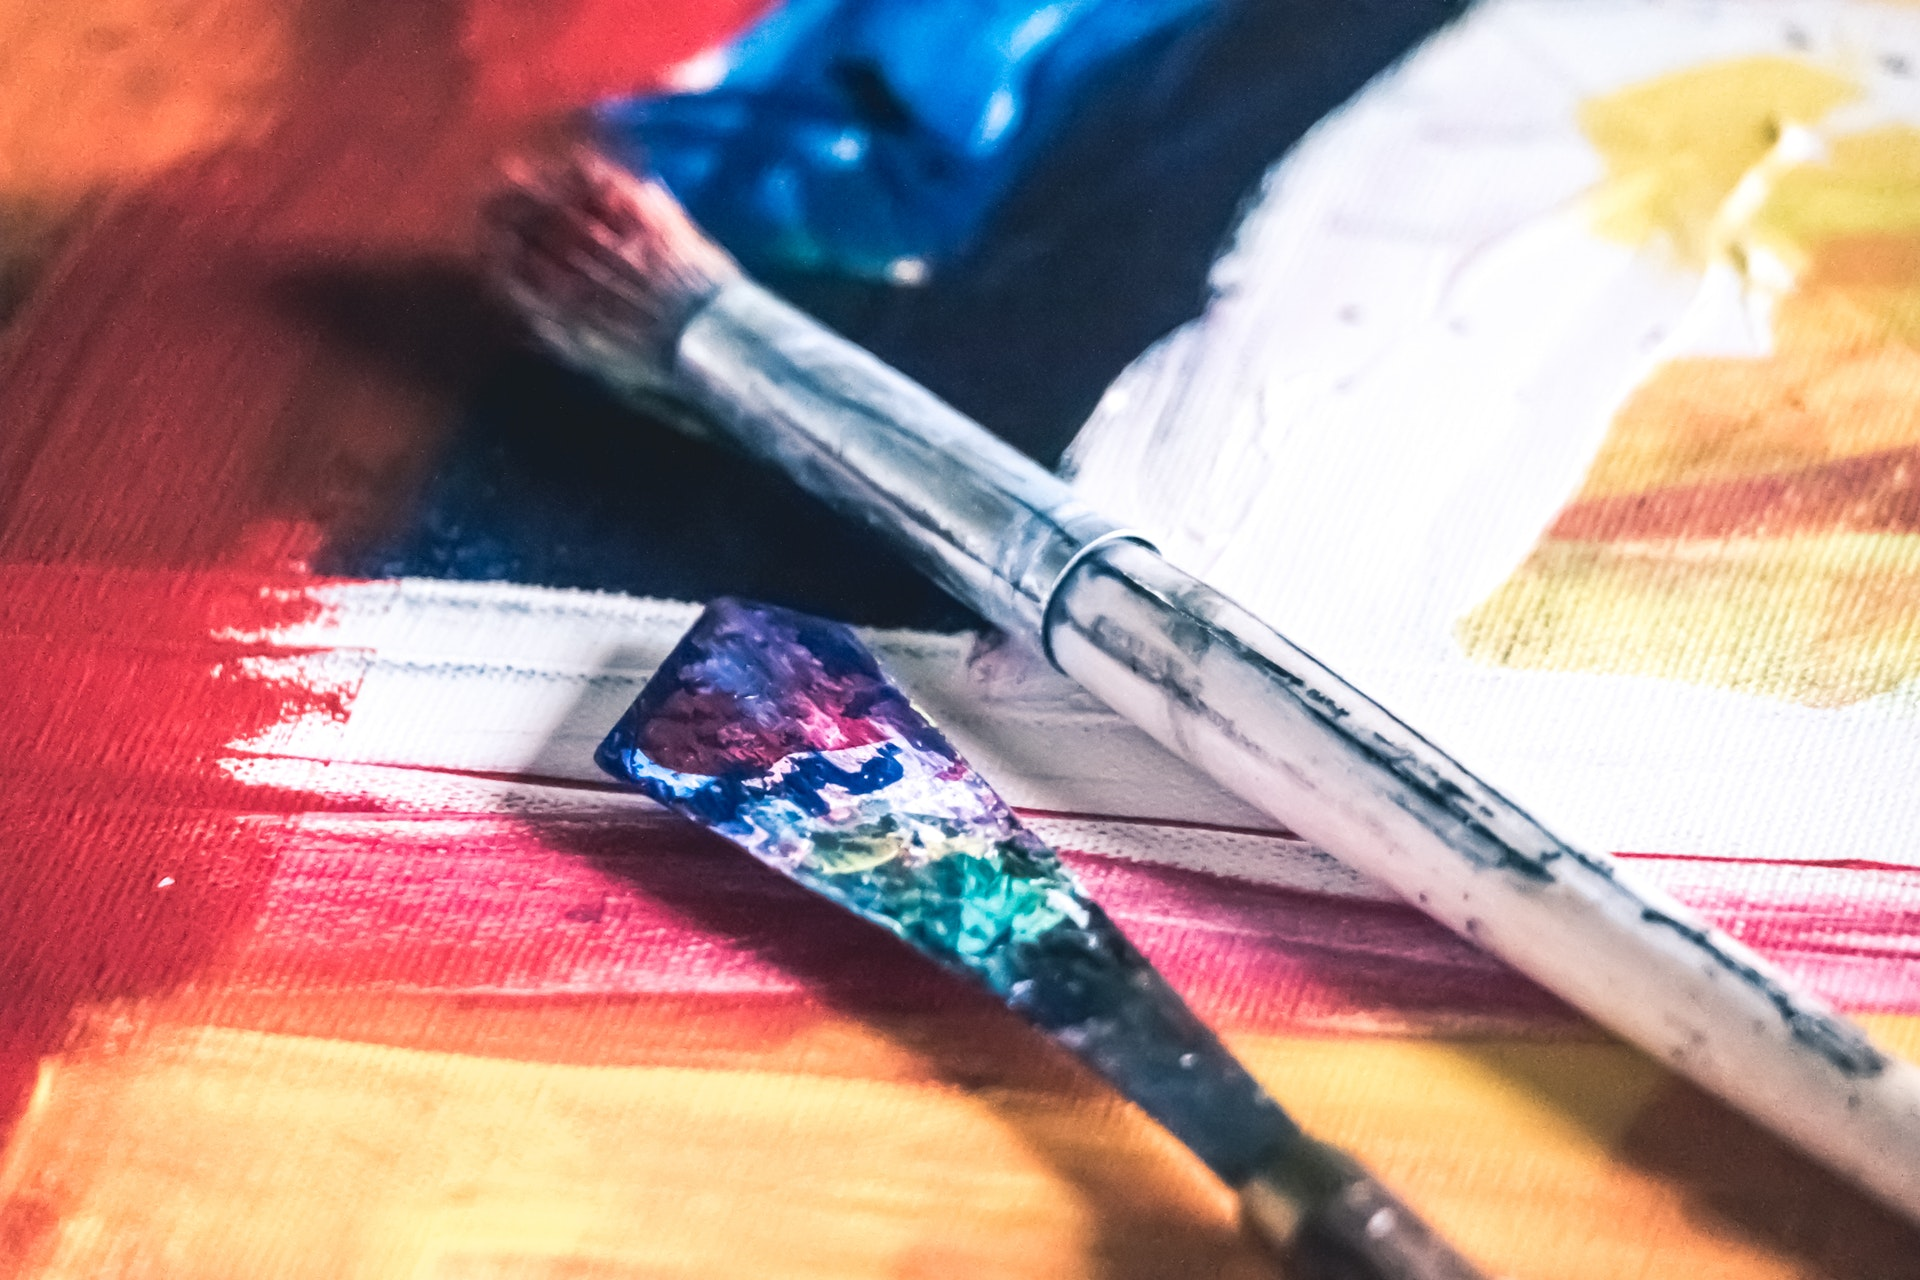 HOW TO MAKE A BATIK-STYLE PAINTING